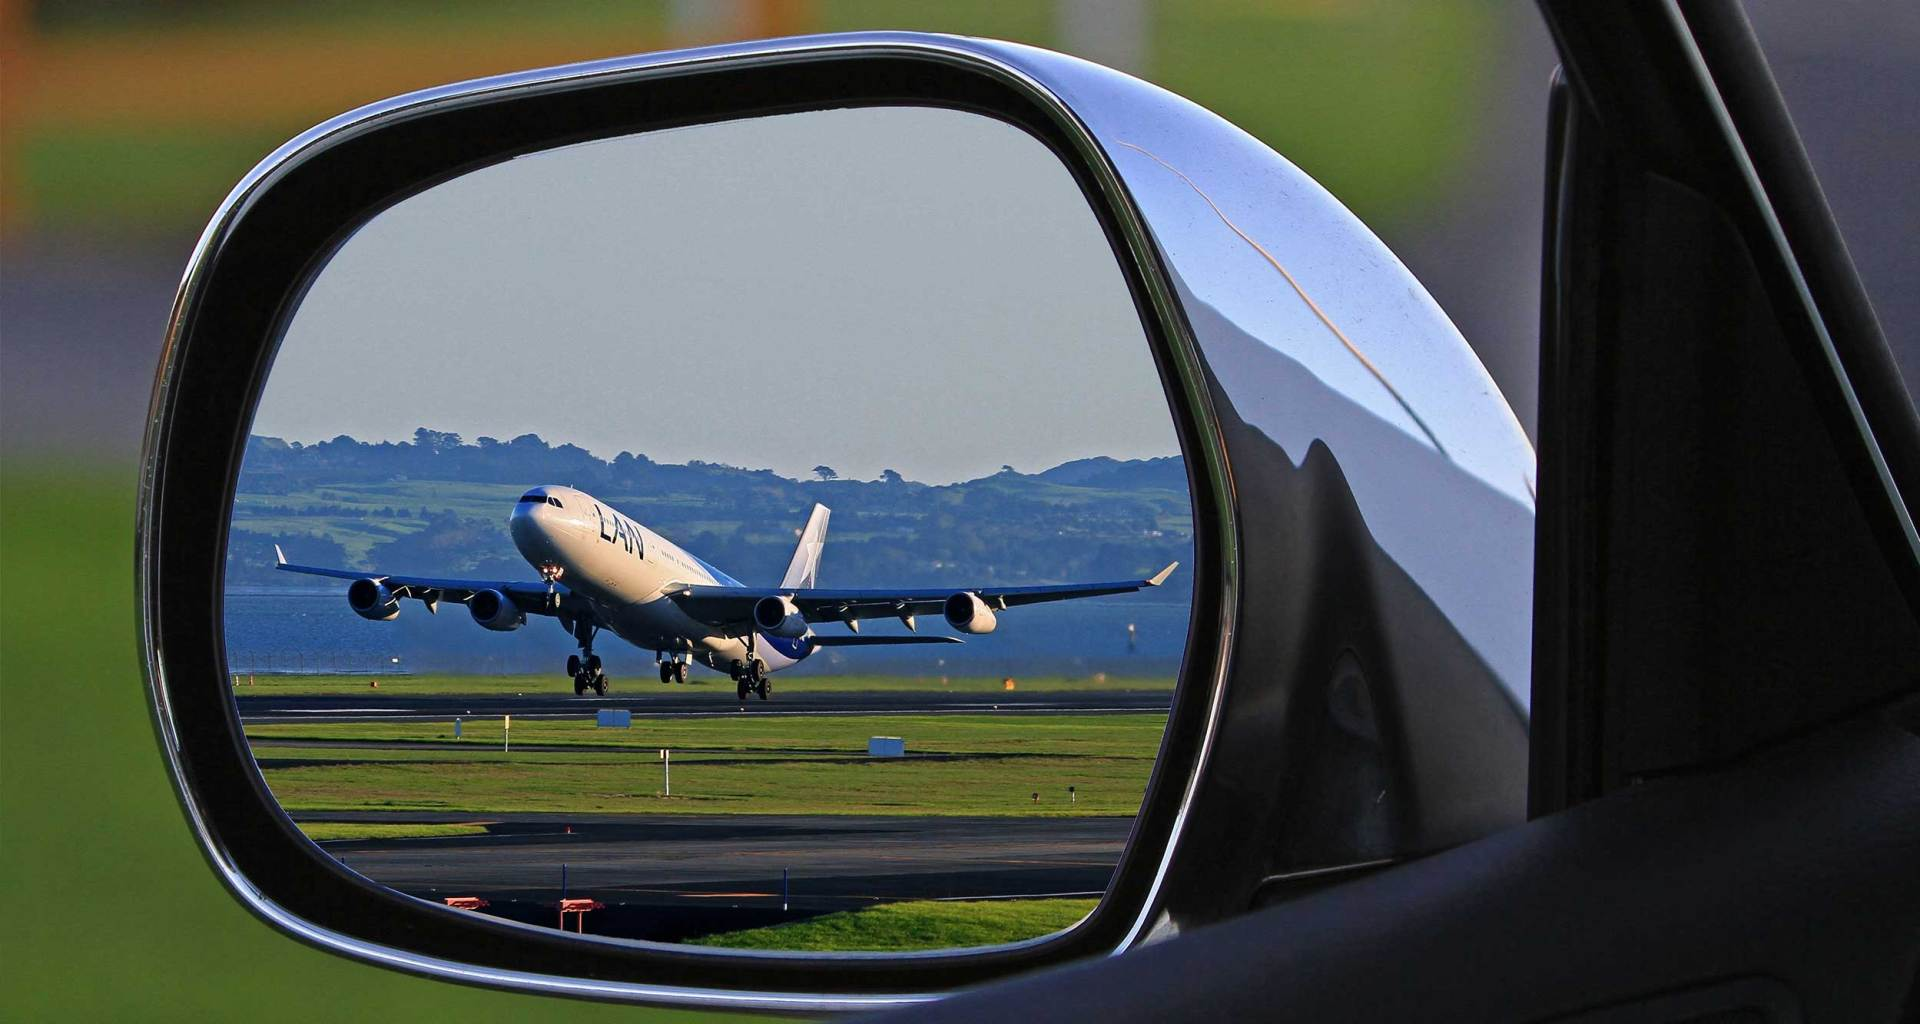 Airplane landing, reflection seen in a car's driver side mirror.